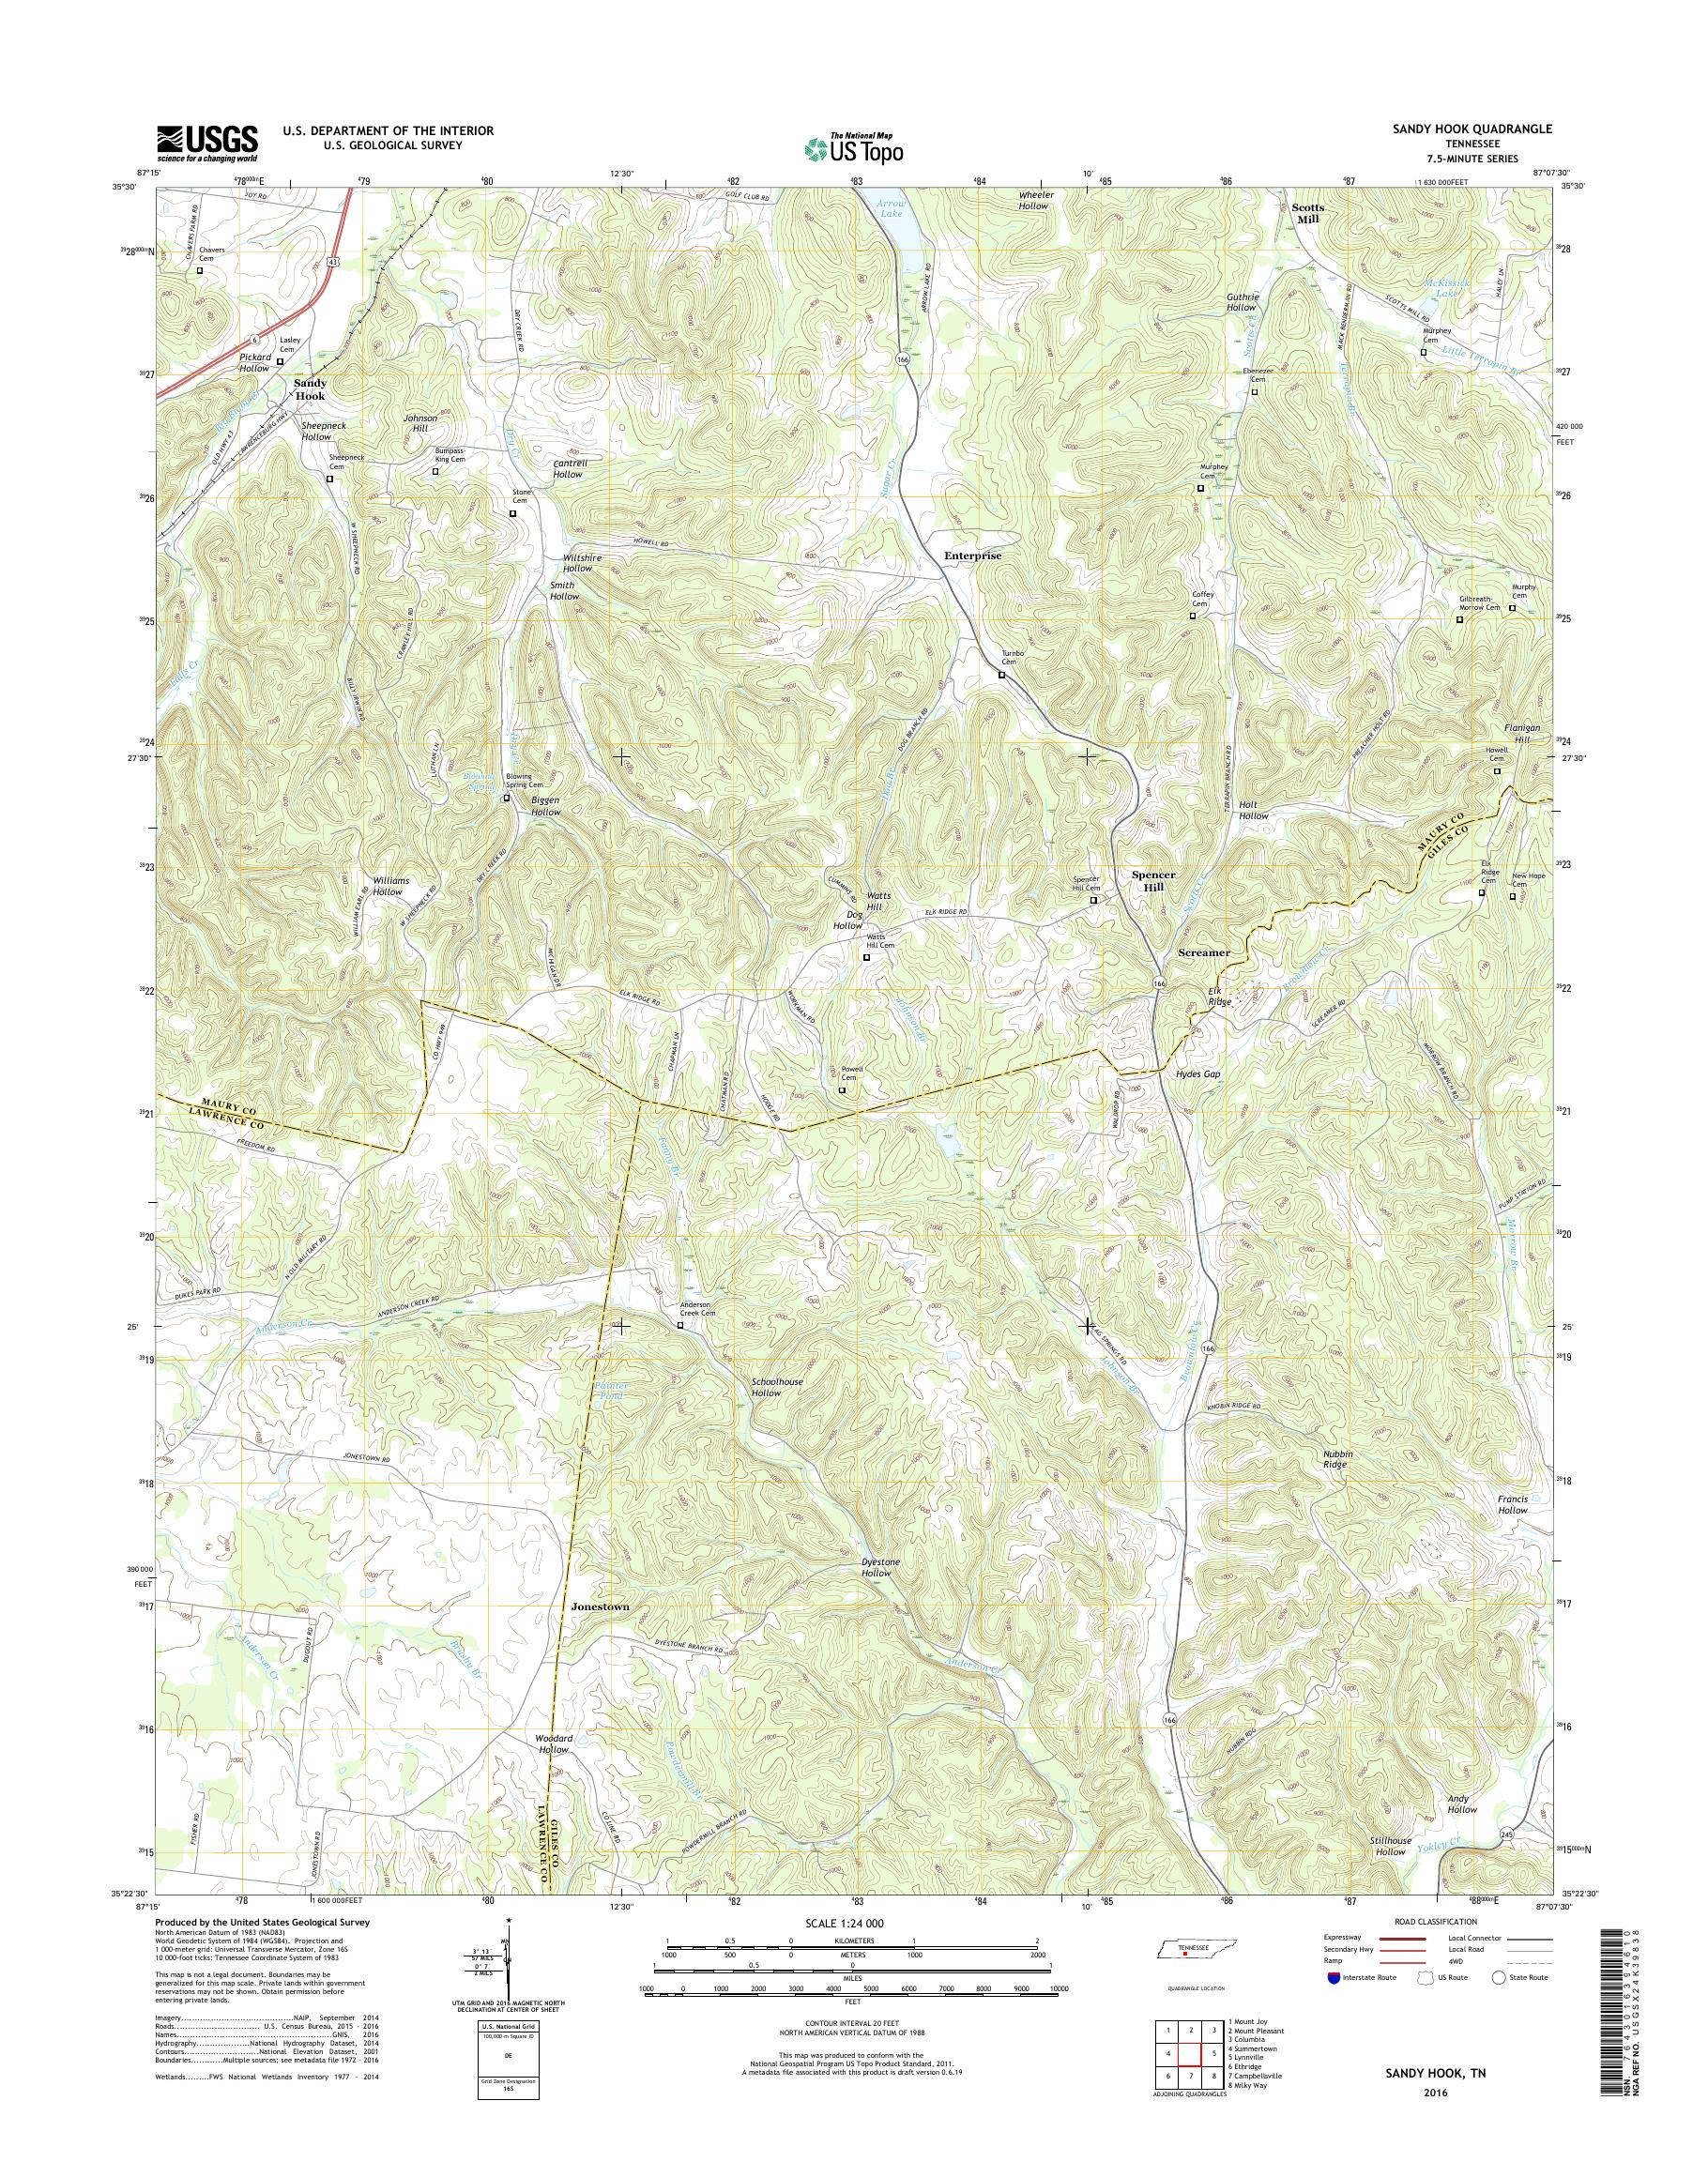 MyTopo Sandy Hook, Tennessee USGS Quad Topo Map on newtown conn map, watertown map, fairfield map, avalon map, jacob riis park map, beach haven map, westport map, white plains map, prospect map, cherry hill map, long branch map, newtown connecticut map, albany map, essex map, new castle map, bloomfield college map, milford map, tuckerton seaport map, roxbury map, woodstock map,